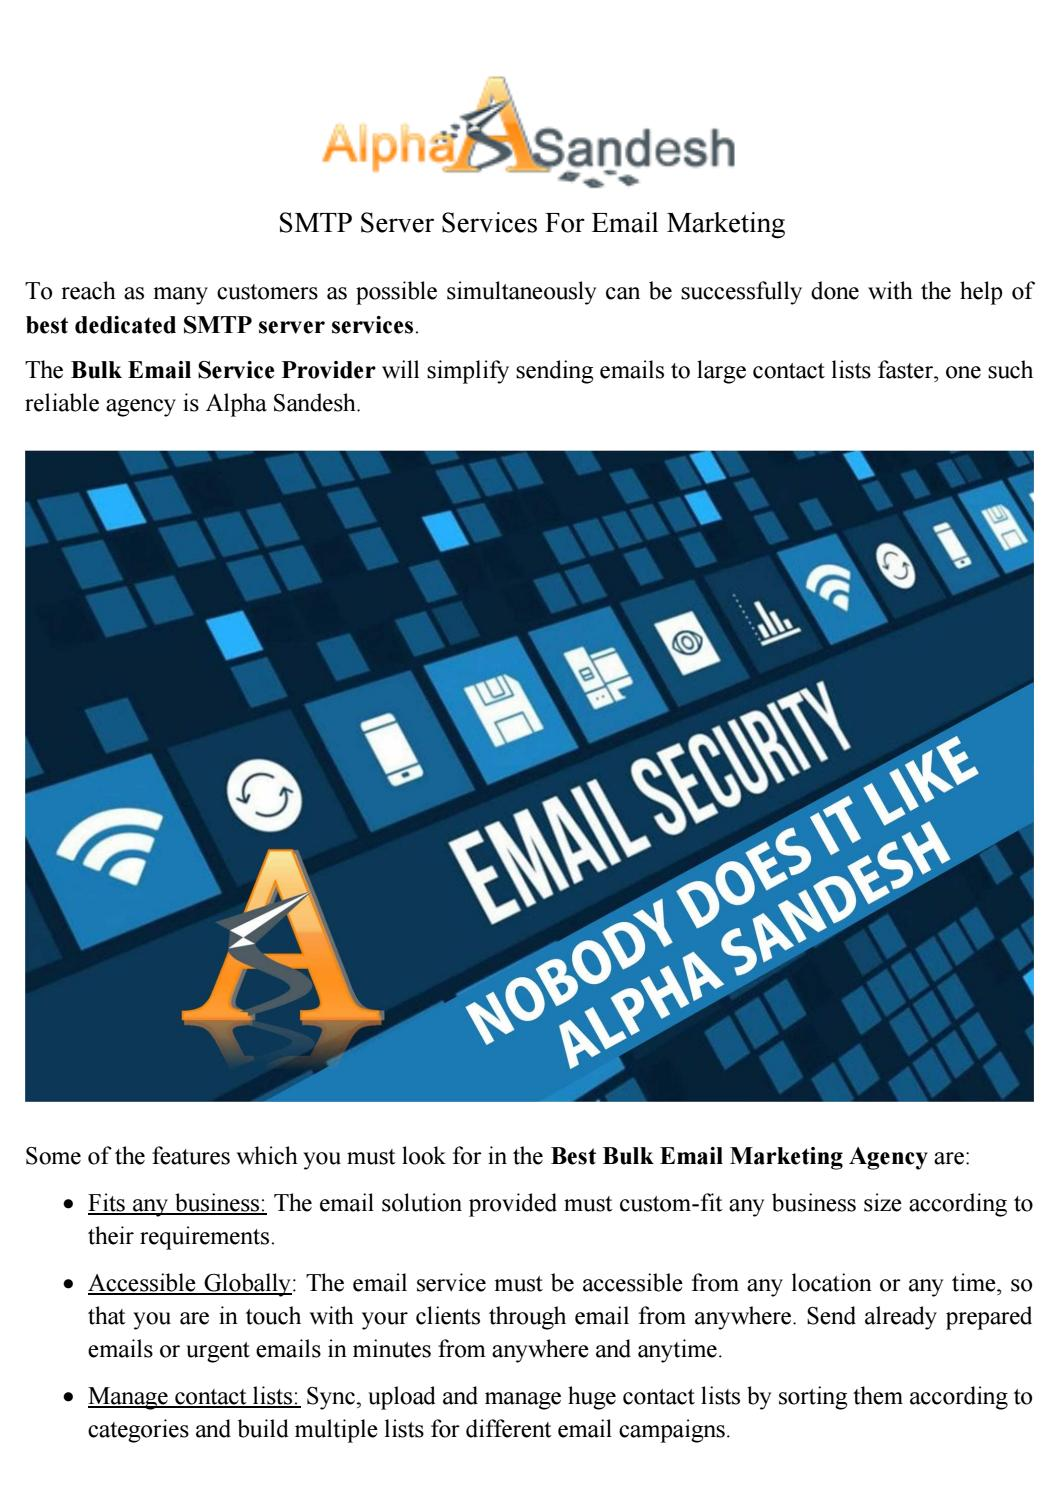 Best SMTP Server Services For Email Marketing by Cella James